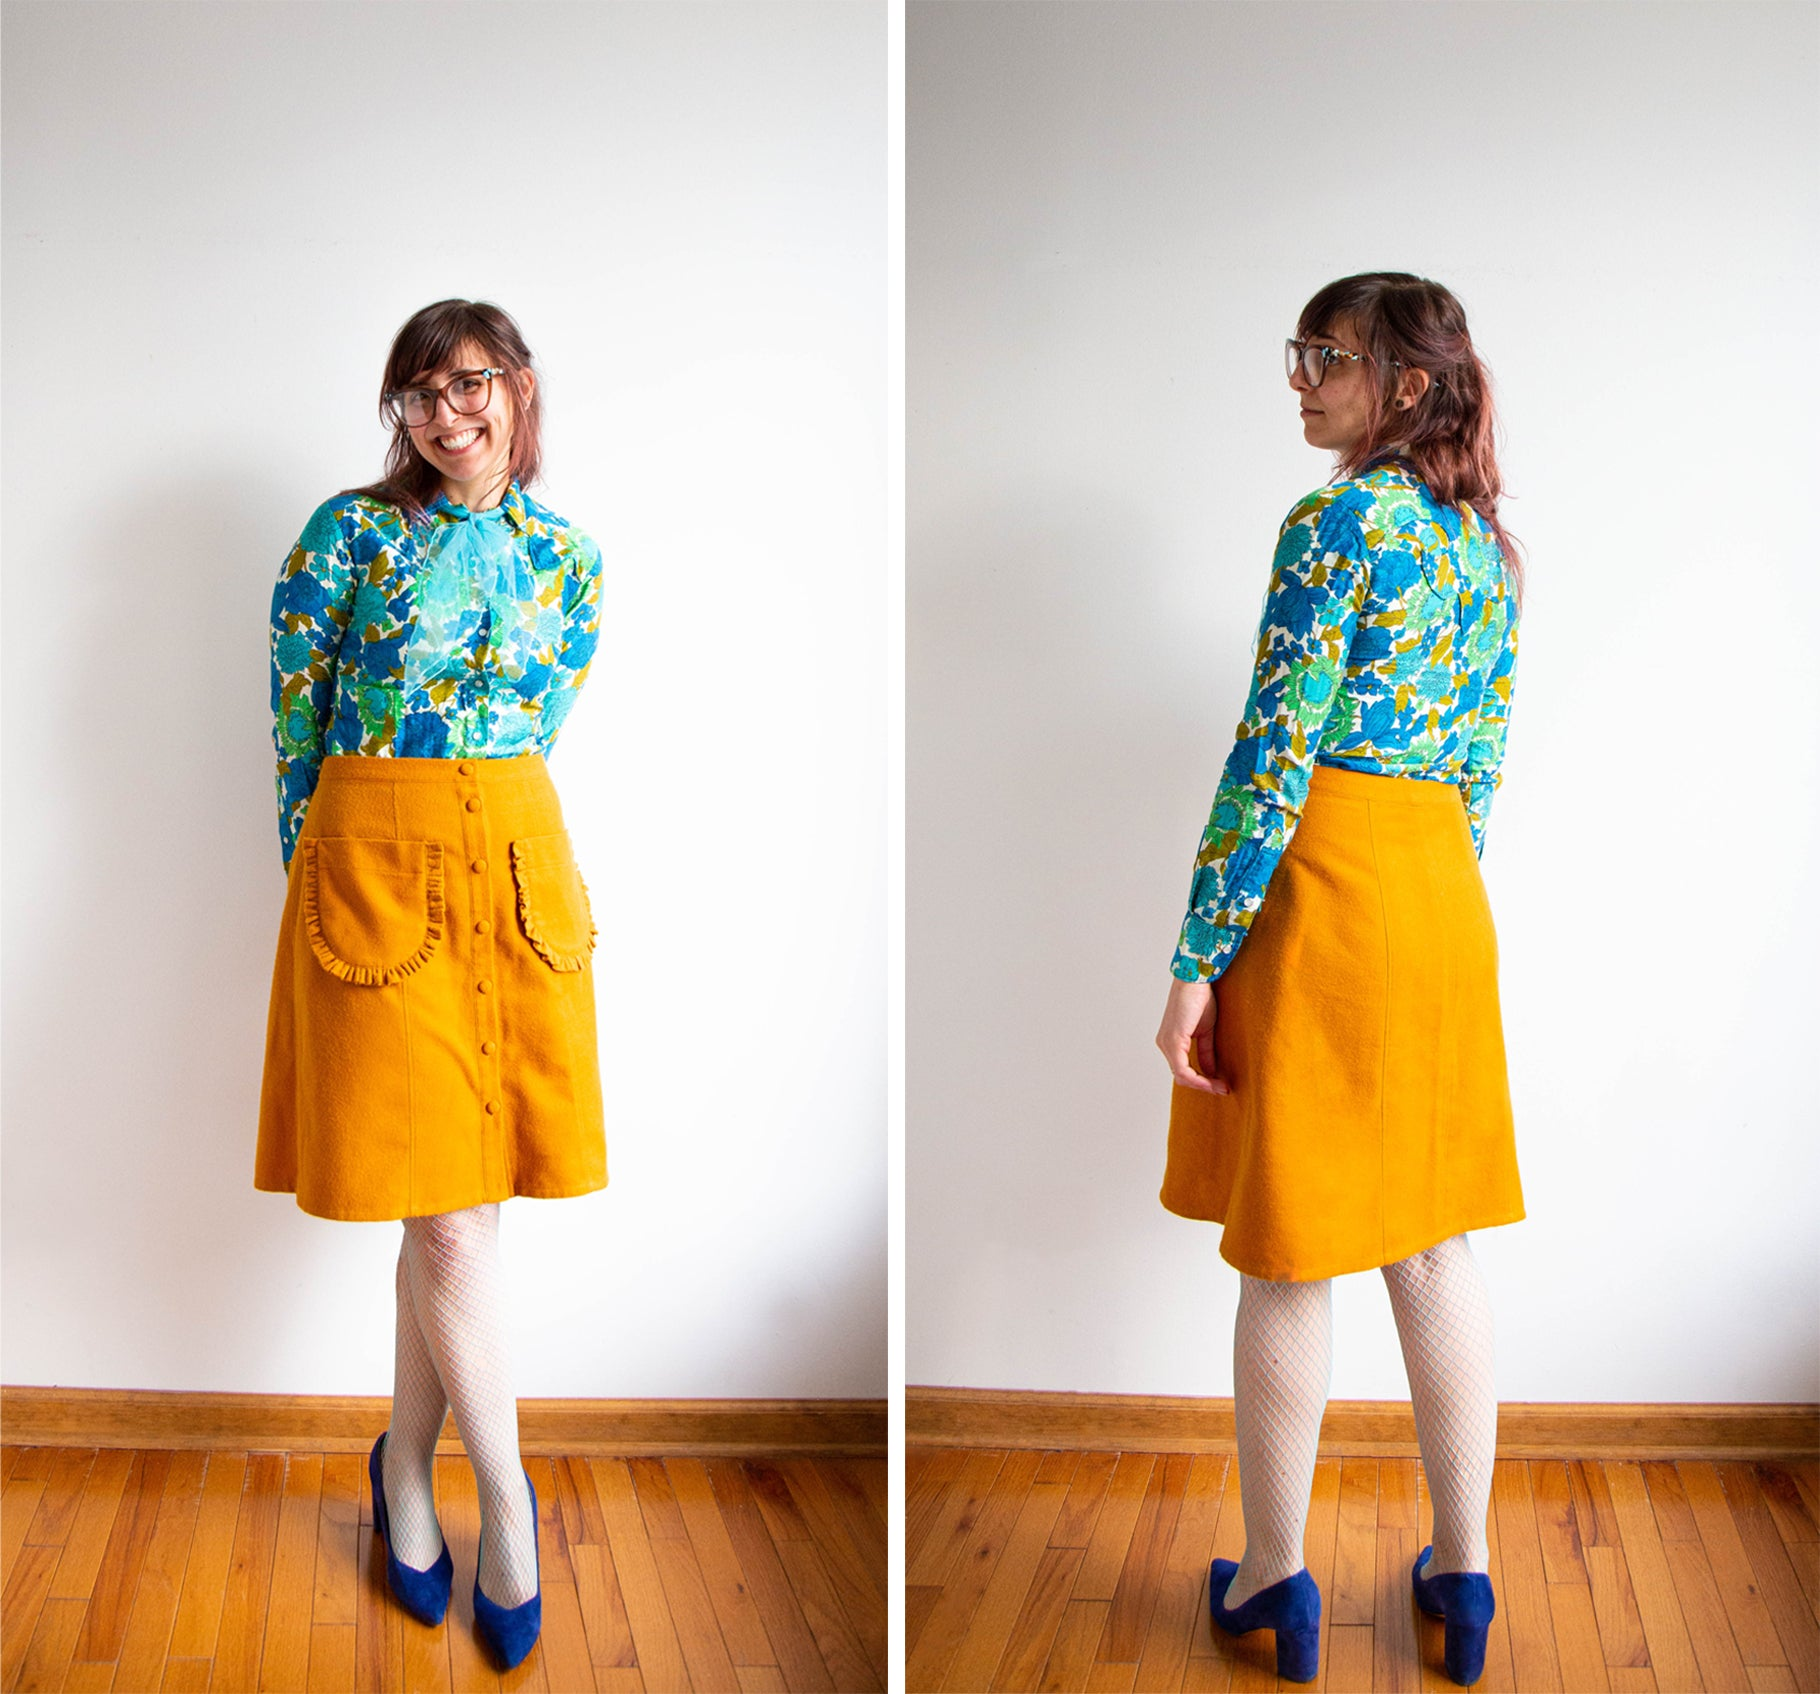 Lexis Reed Skirt with fancy pockets | Grainline studio